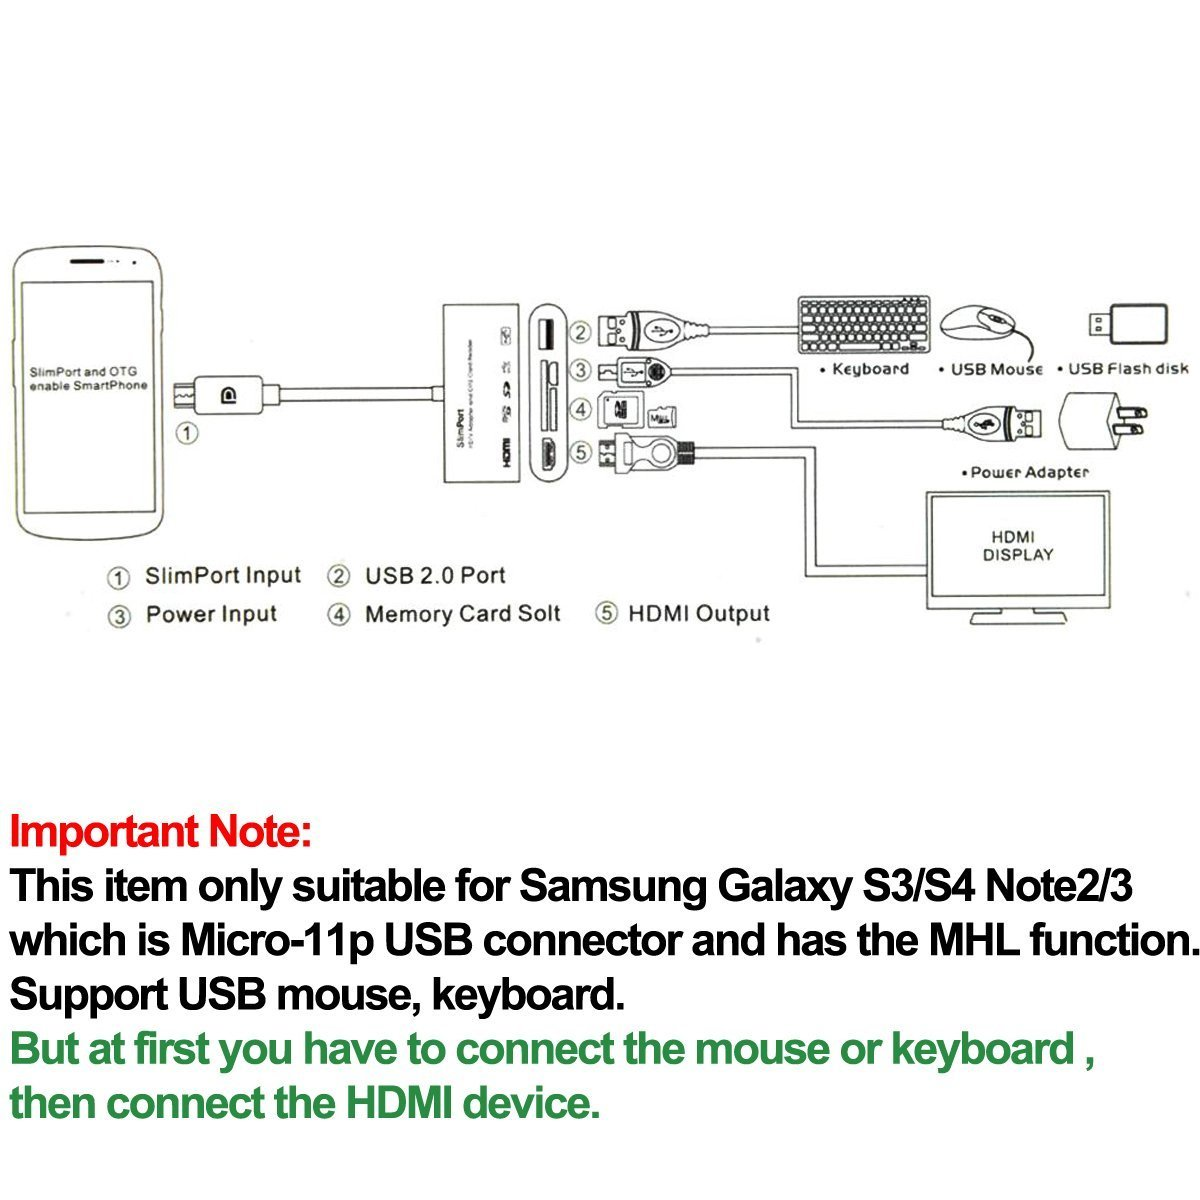 Grandey 3 In 1 Micro Usb Otg Sd Tf Card Reader Writer 2 0 Schematic Hub Mhl To Hdmi Hdtv Tv Adapter For Samsung Galaxy S3 S4 Note2 I9300 I9500 N7100 Home